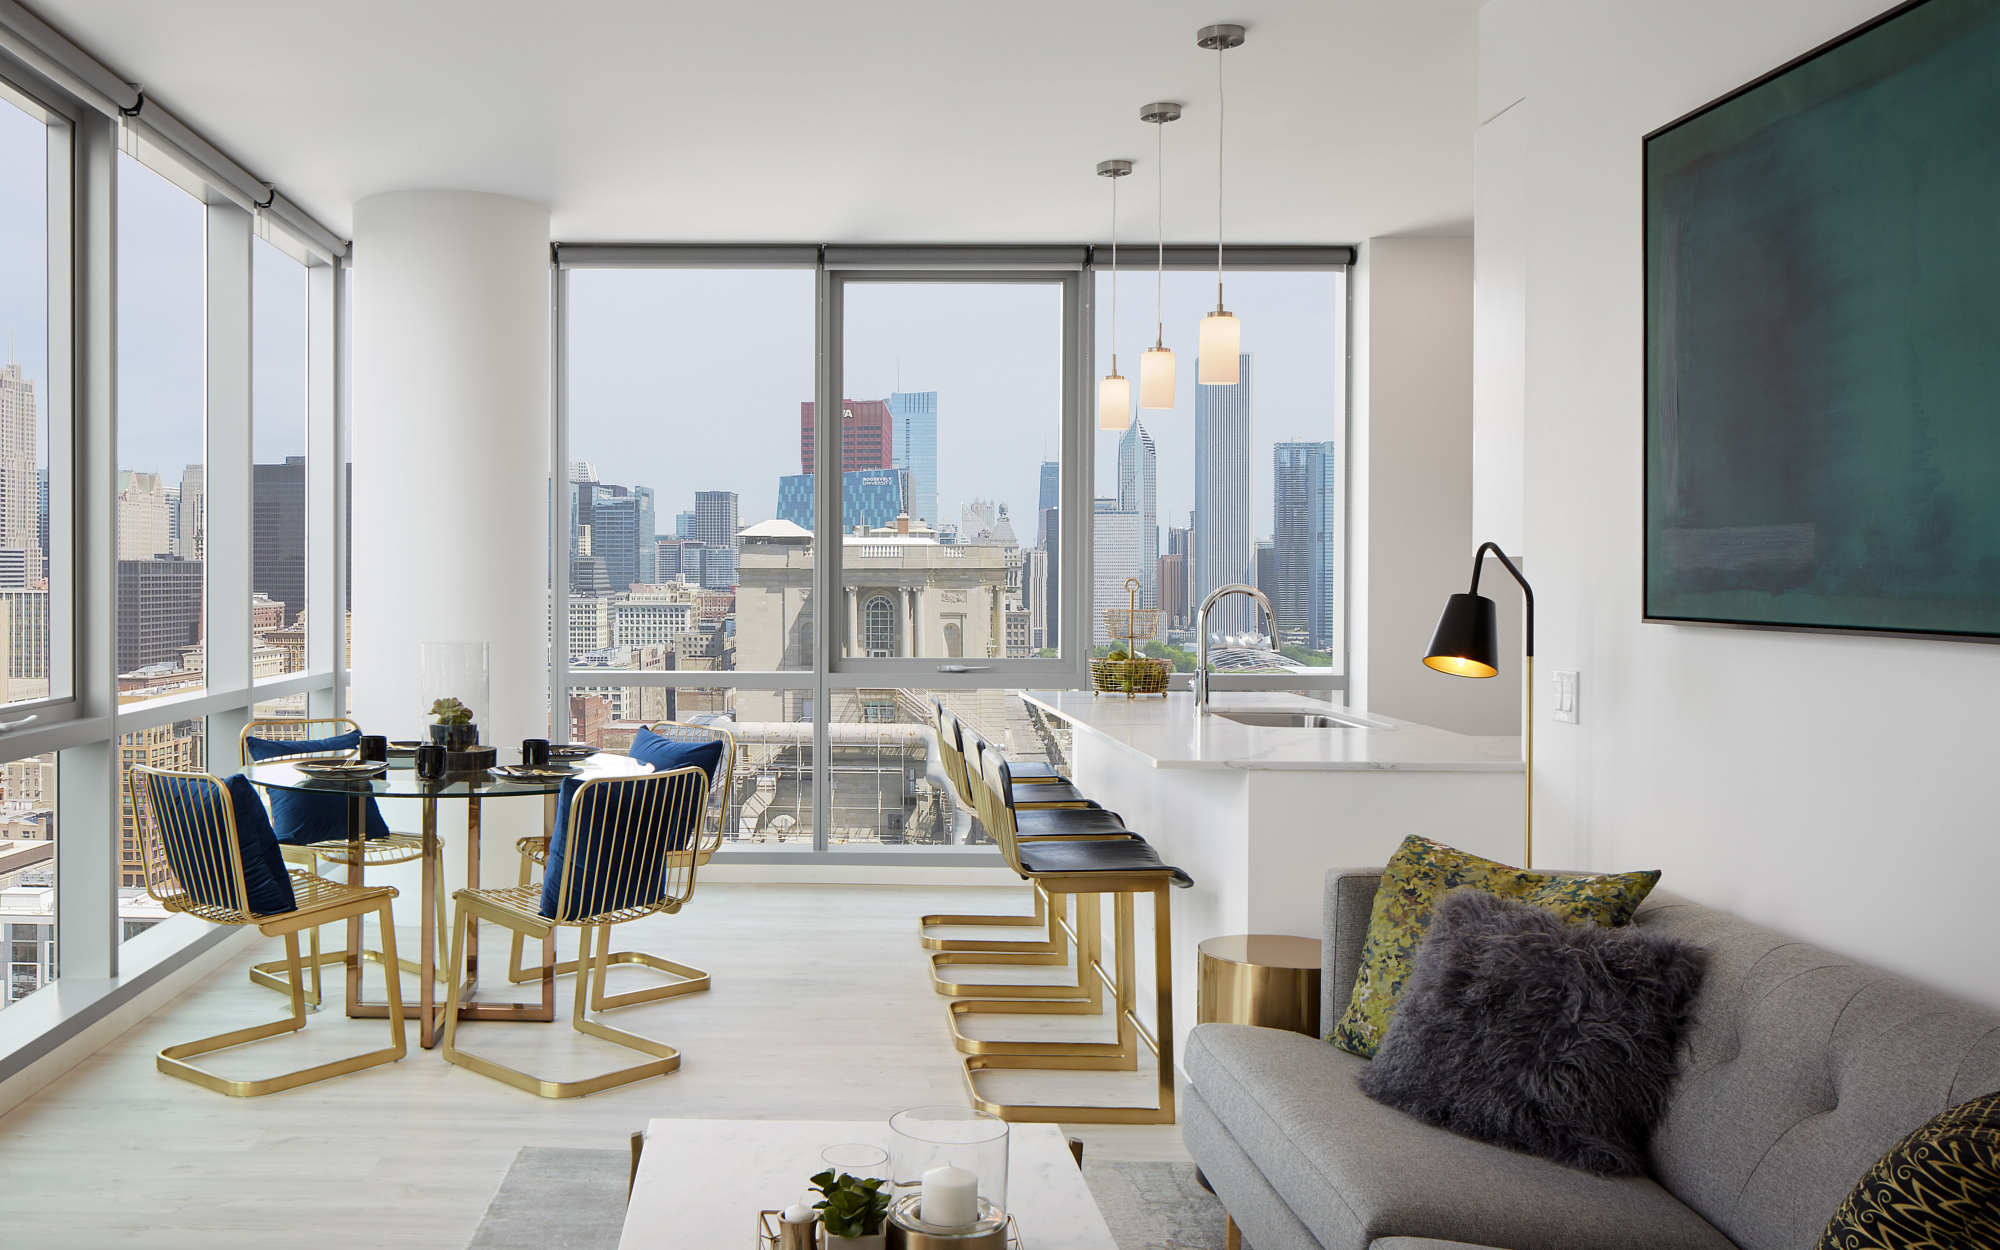 Essex interior living room model with skyline view